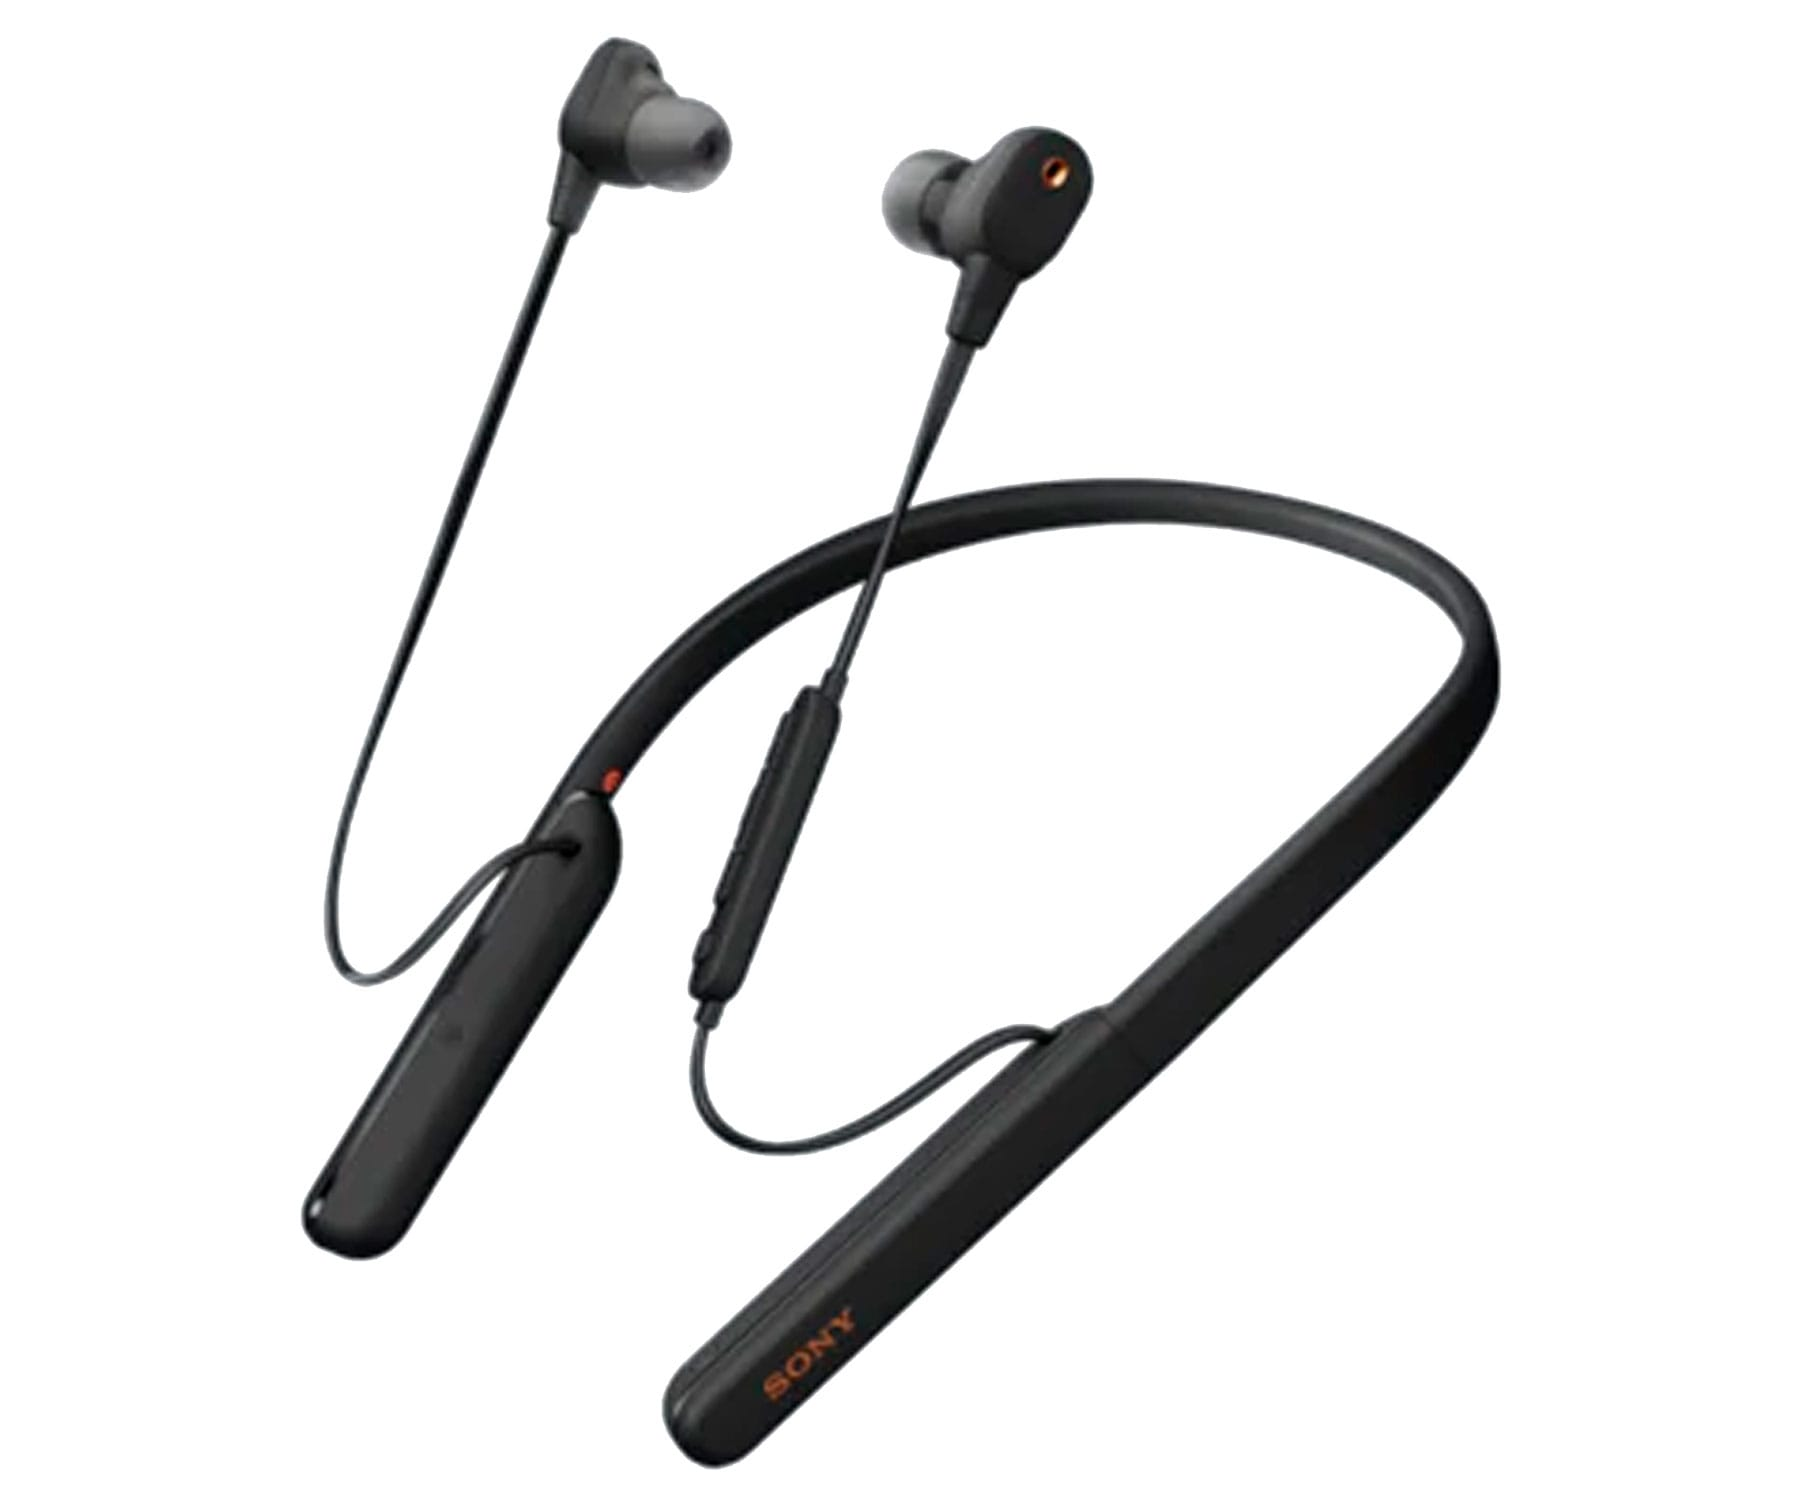 SONY WI-1000XM2 NEGRO AURICULARES INALÁMBRICOS IN-EAR NOISE CANCELLING BLUETOOTH